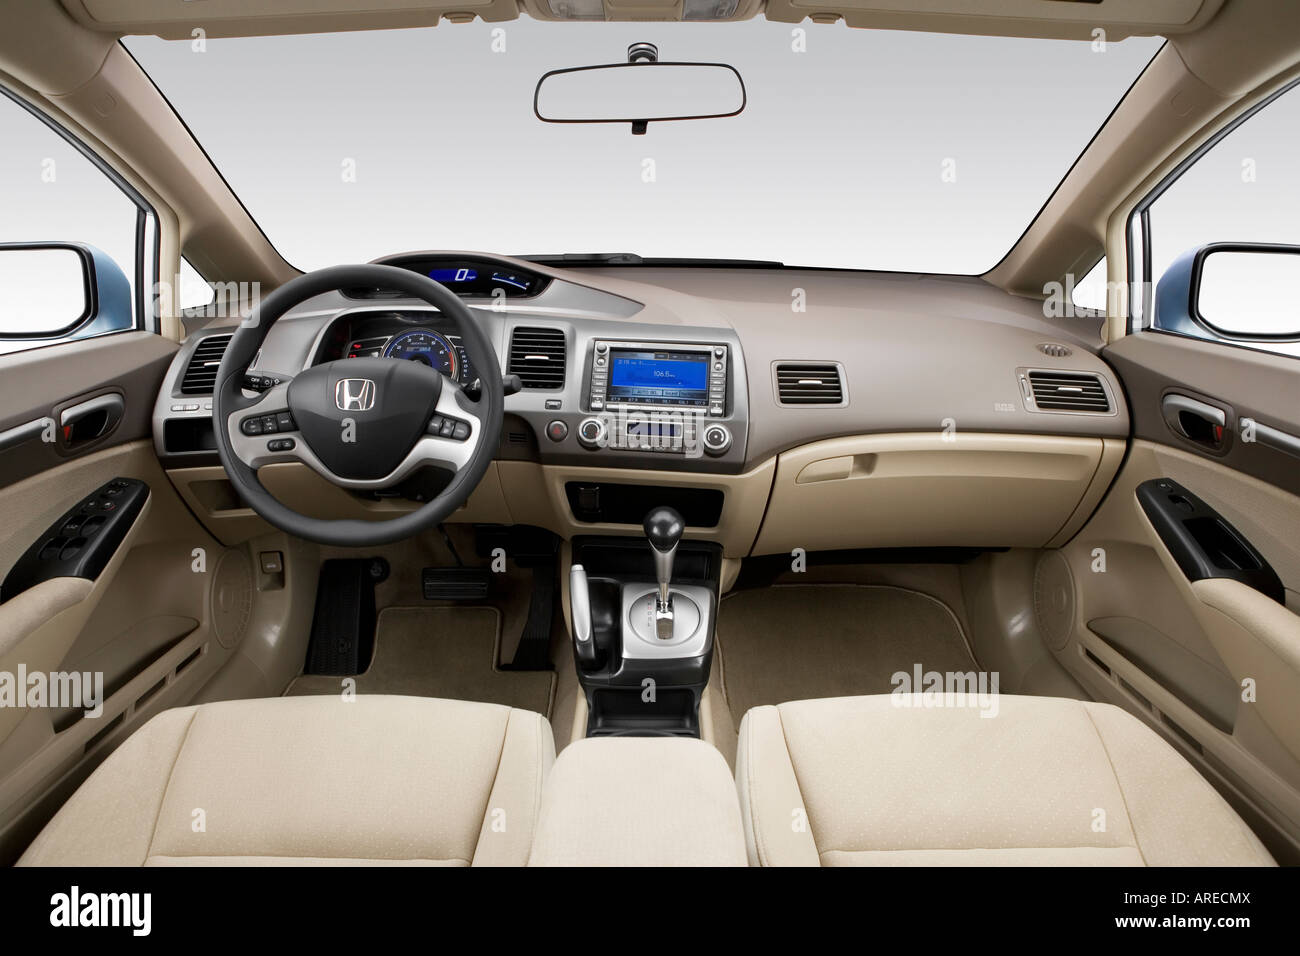 2006 honda civic hybrid in blue dashboard center. Black Bedroom Furniture Sets. Home Design Ideas